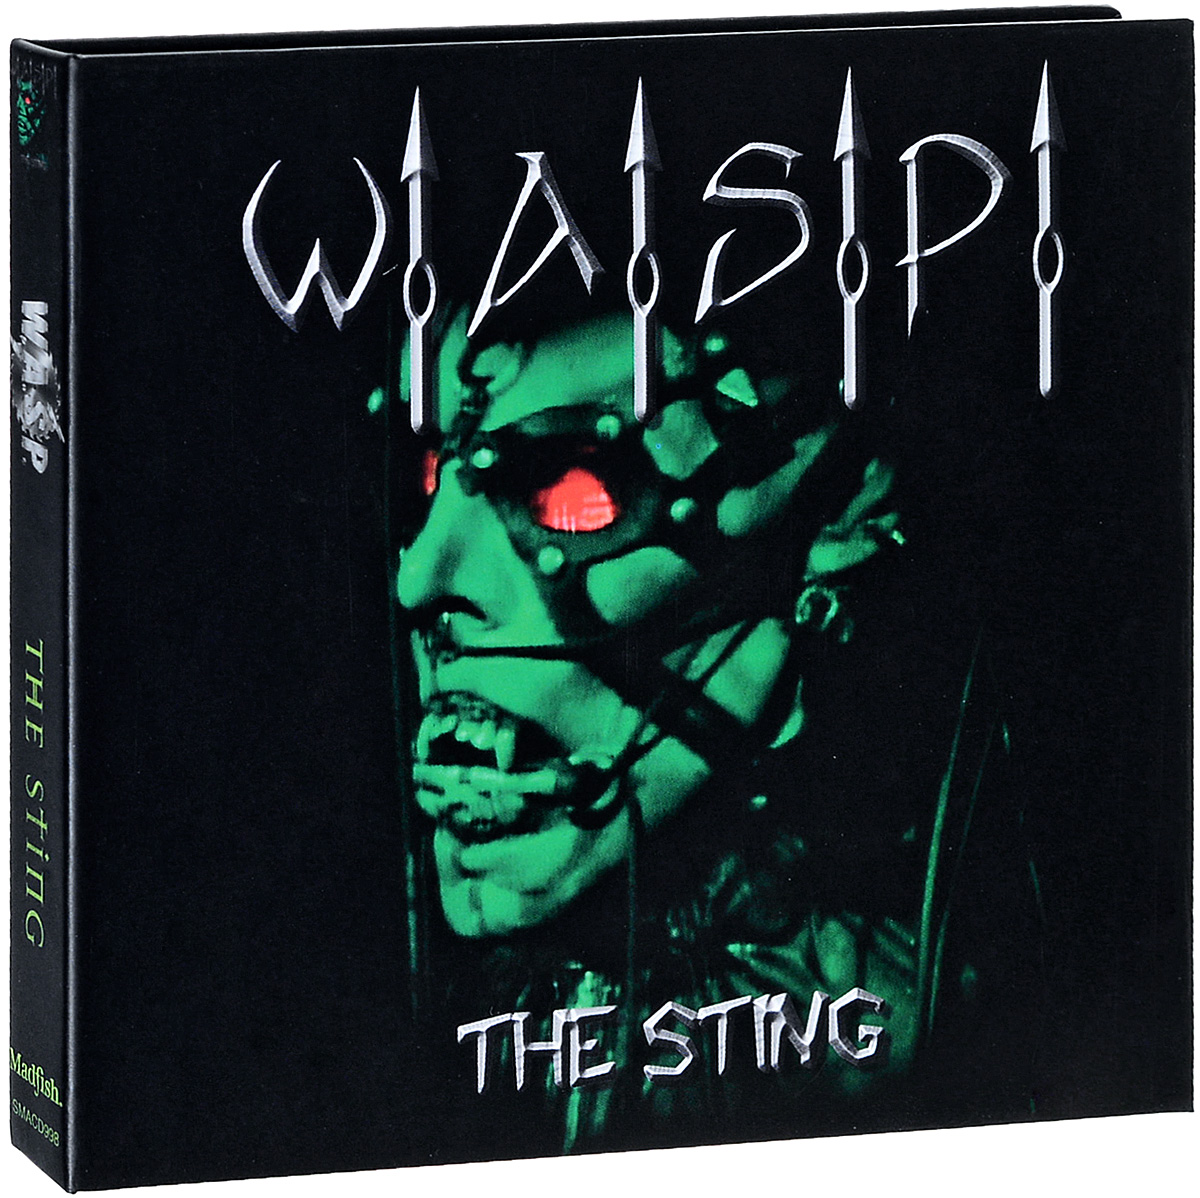 W.A.S.P. - The Sting (Live at the Key Club, L.A.) (DVD + CD)